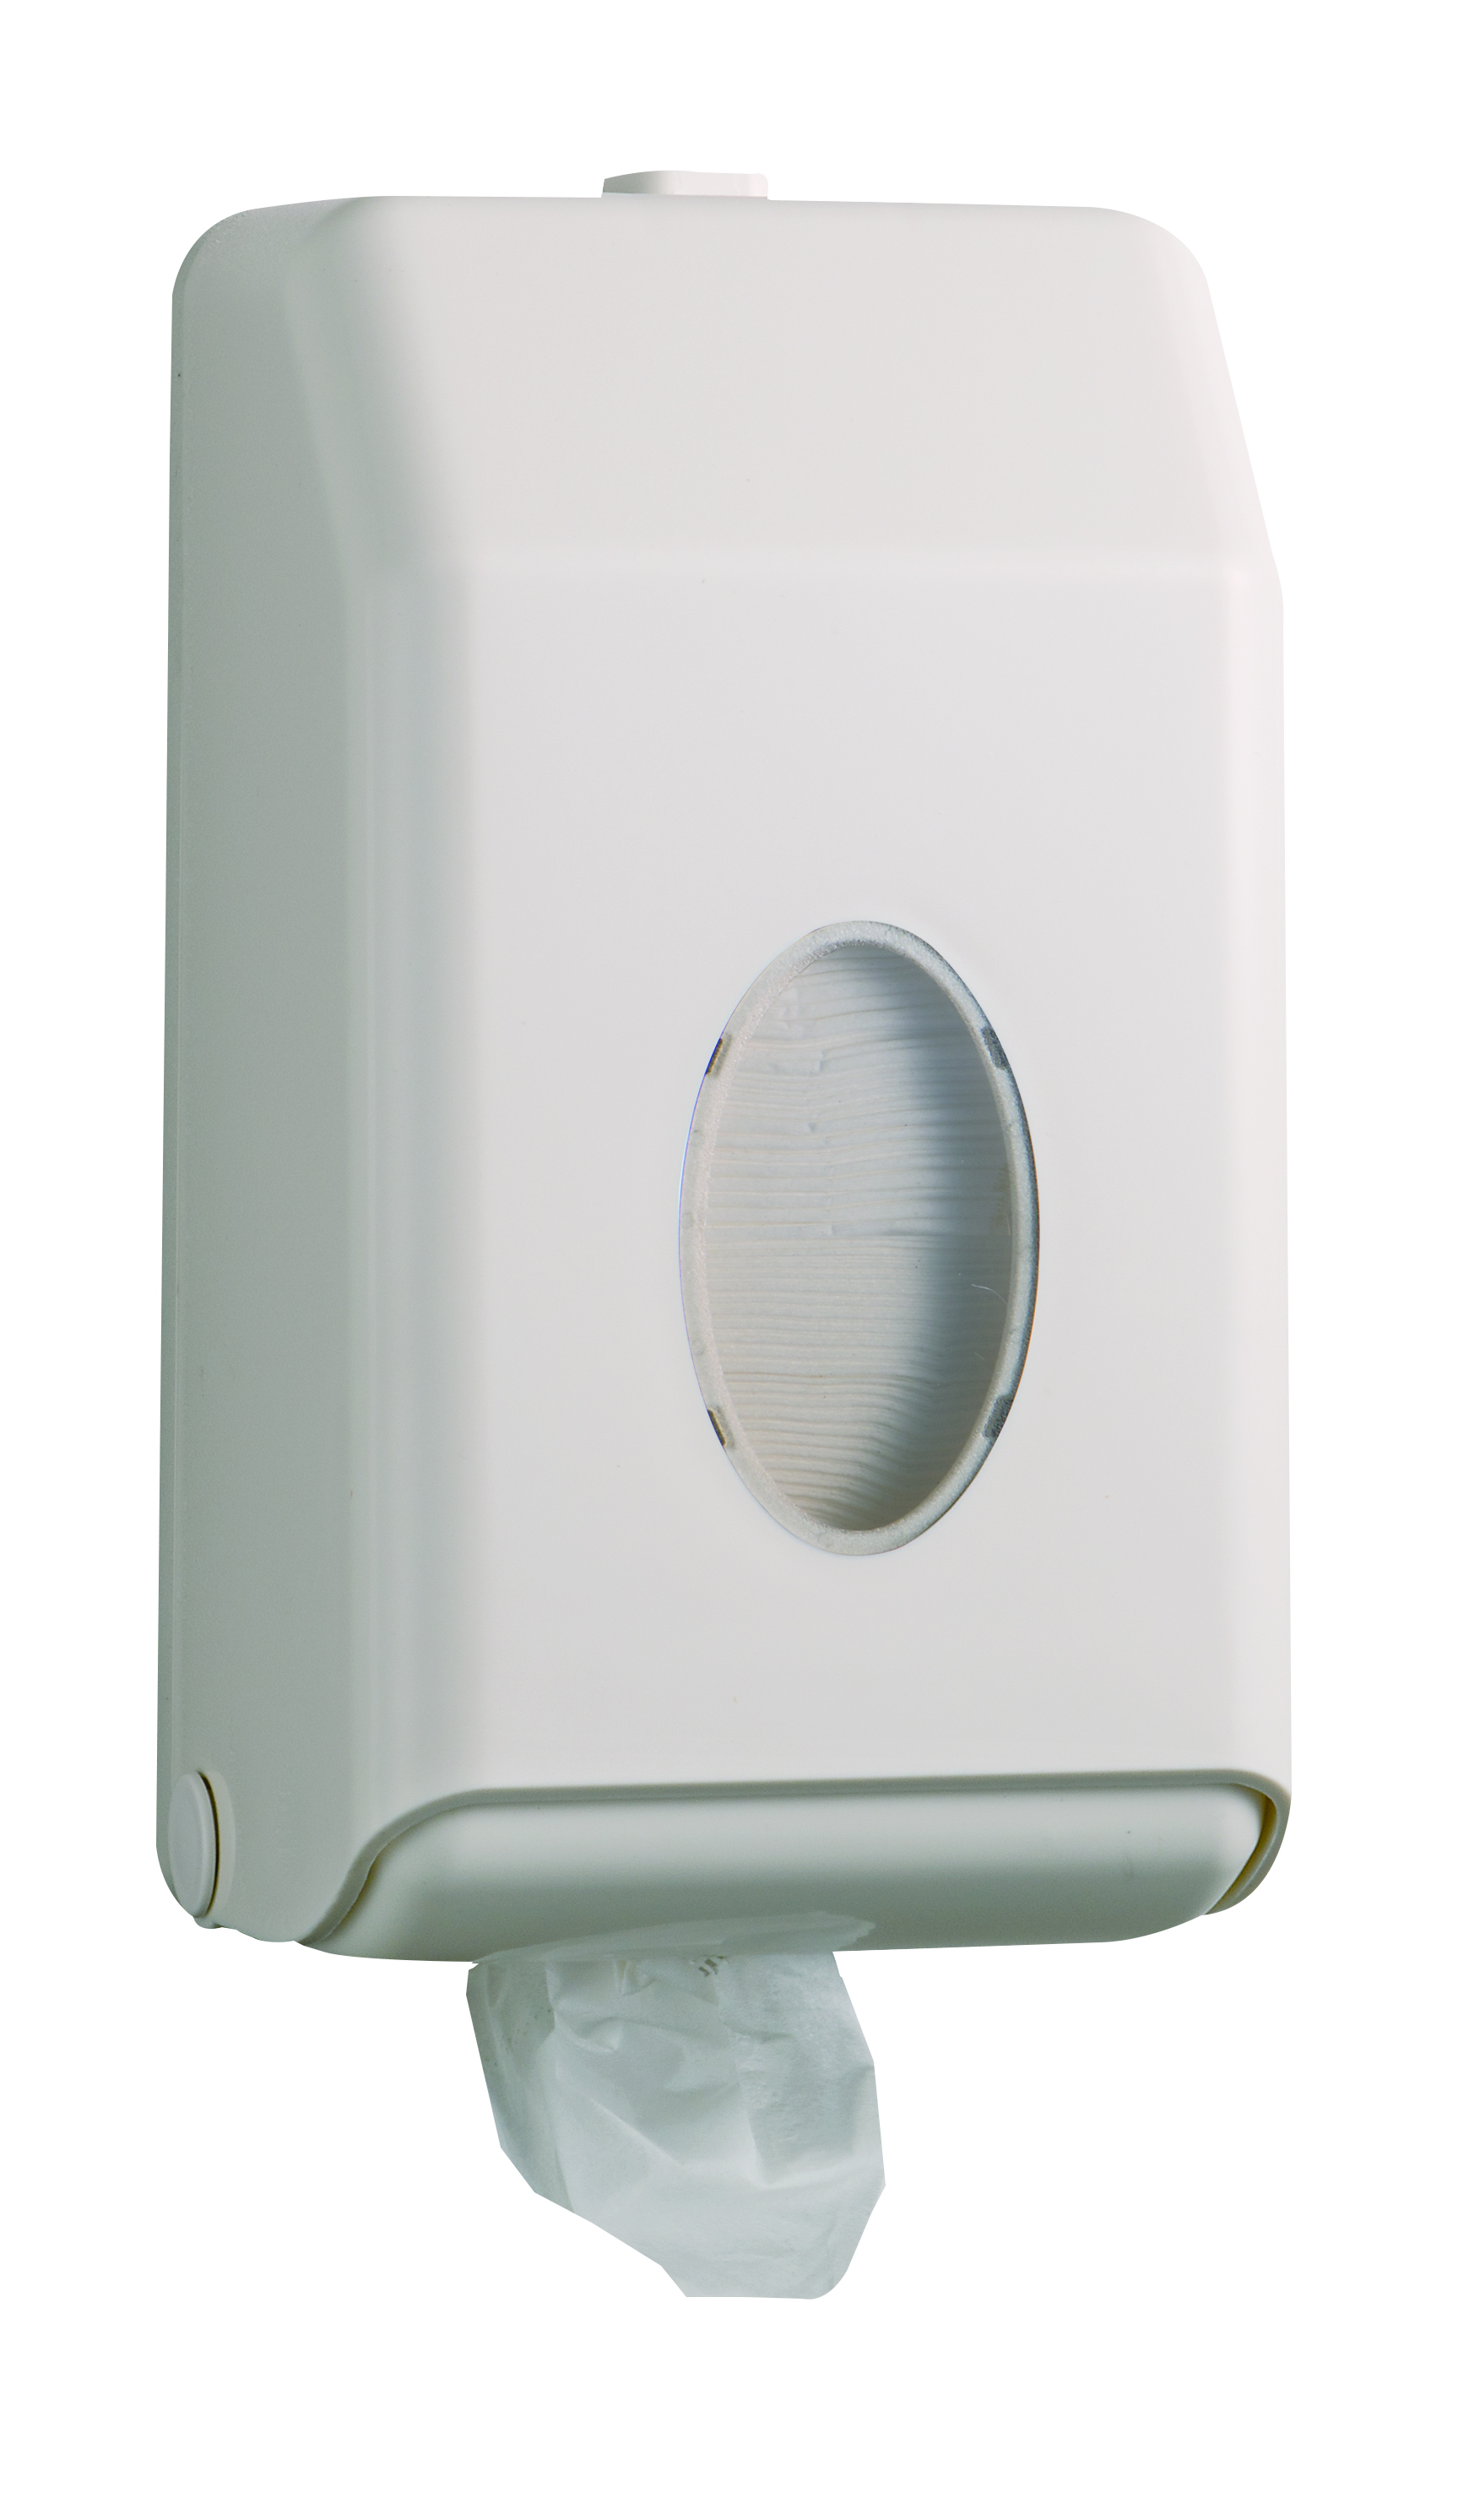 節能擦手紙架Interfold hand towel dispenser-Mini size